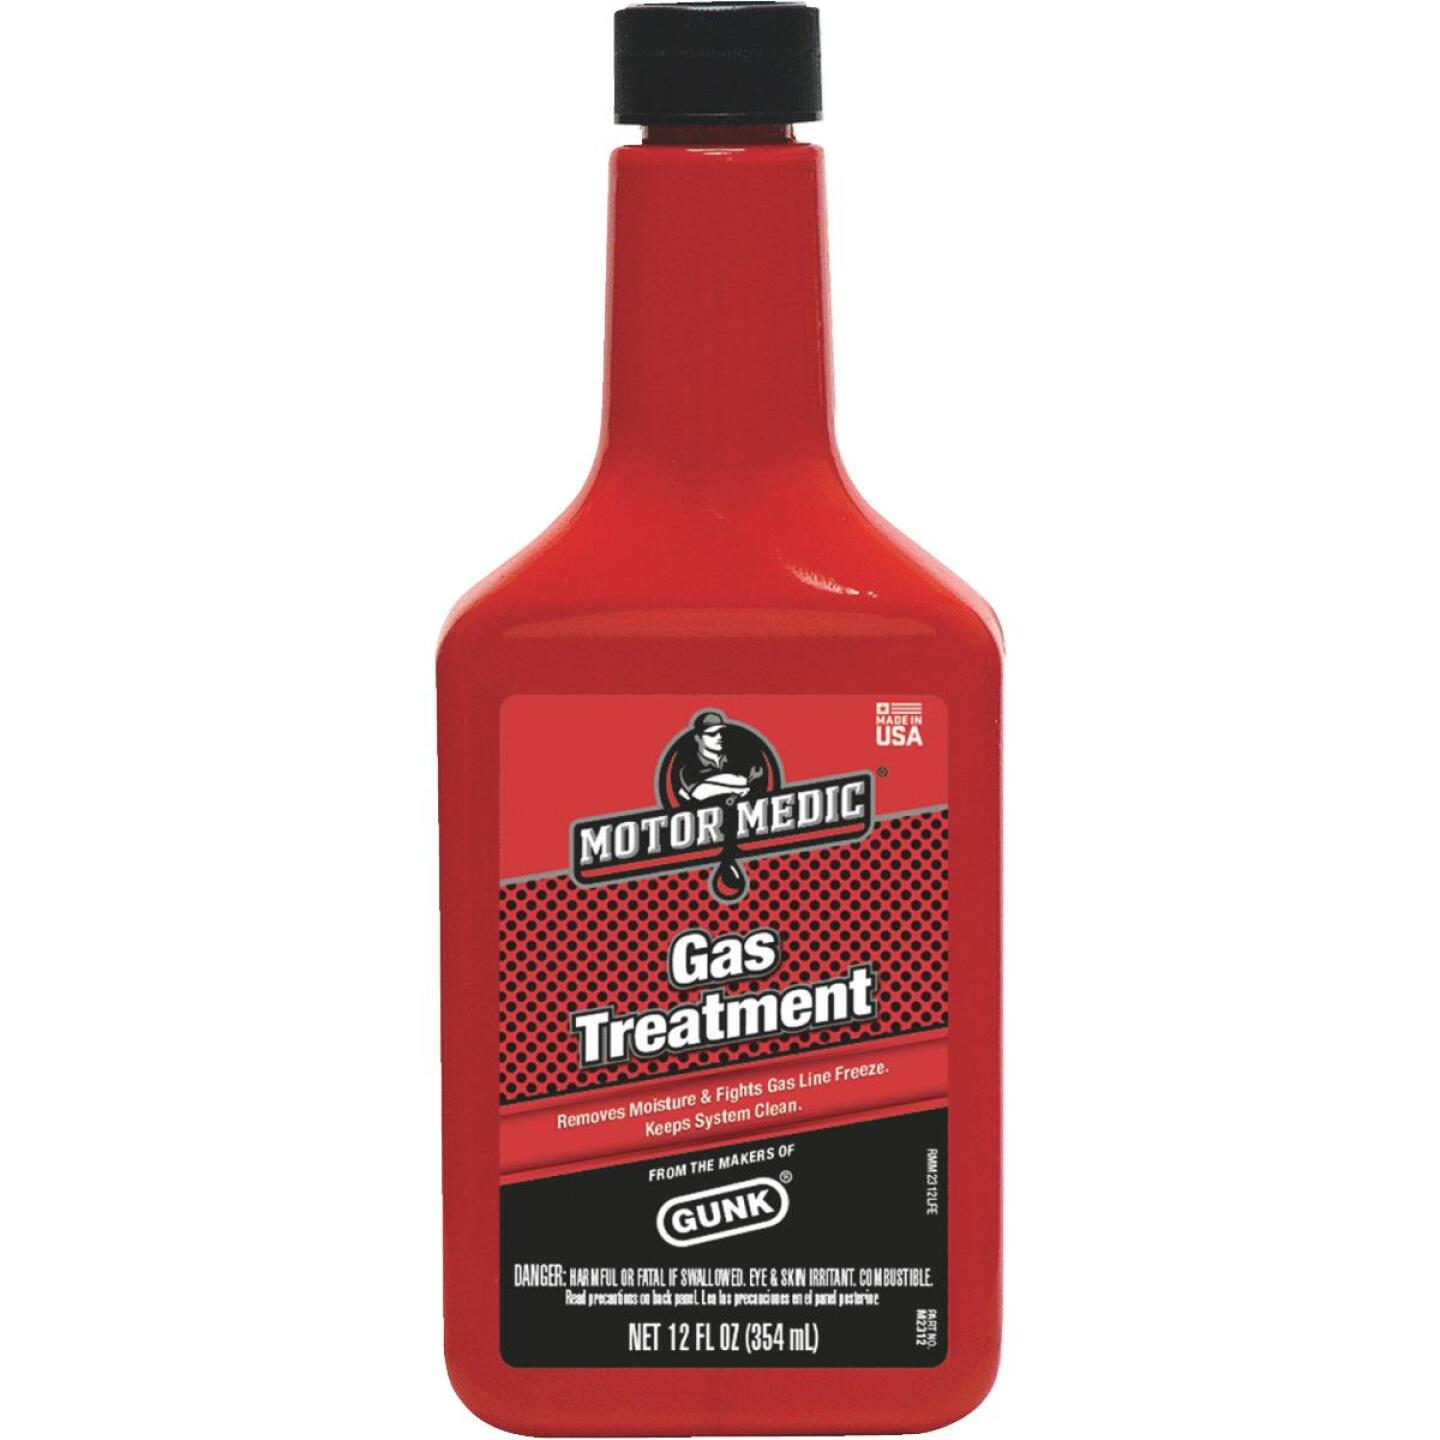 MotorMedic 12 Fl. Oz. Gas Treatment Image 1